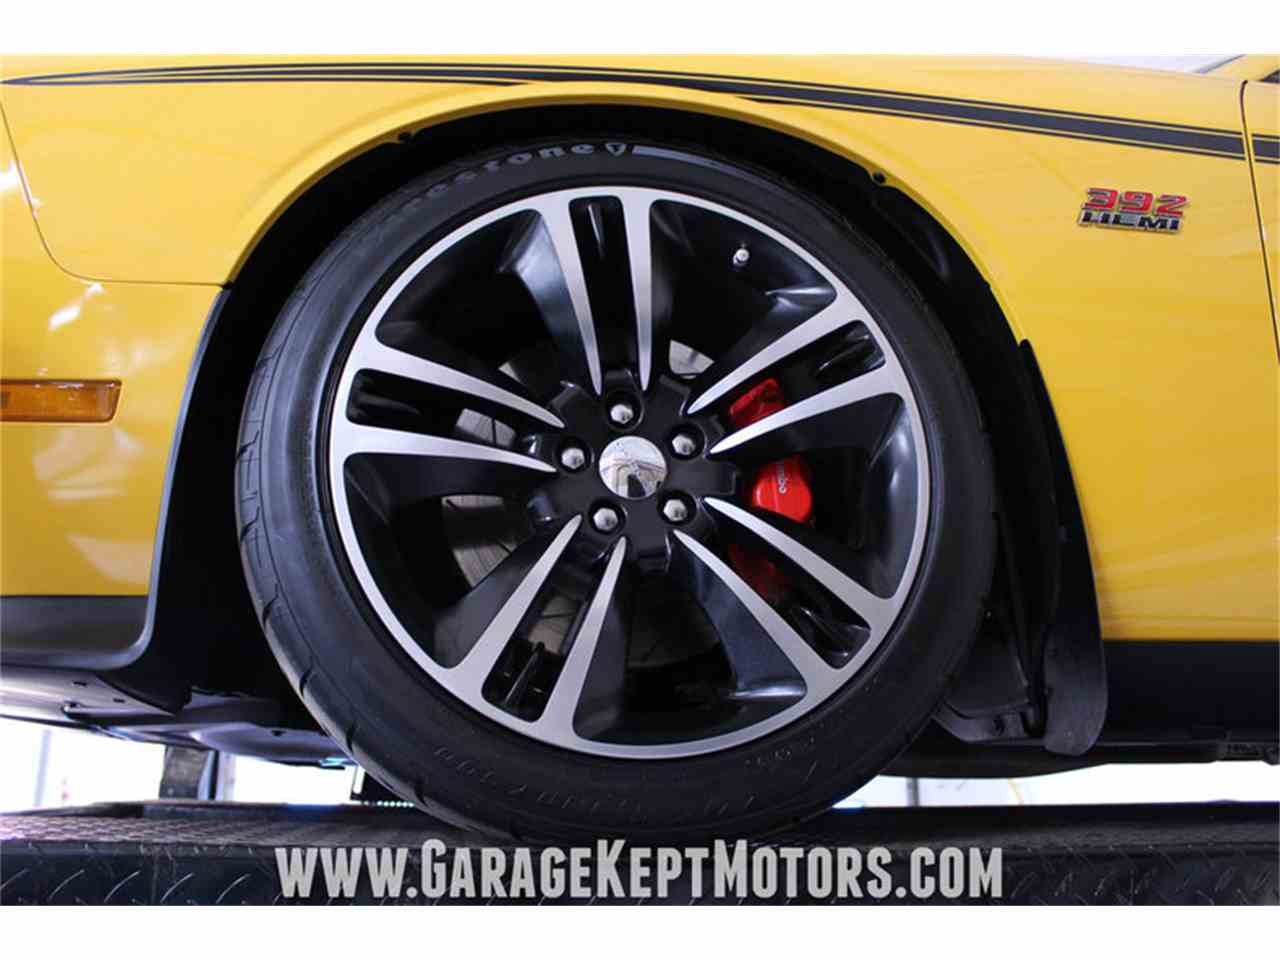 Large Picture of '12 Dodge Challenger SRT8 392 Yellow Jacket - $36,500.00 Offered by Garage Kept Motors - MAXR